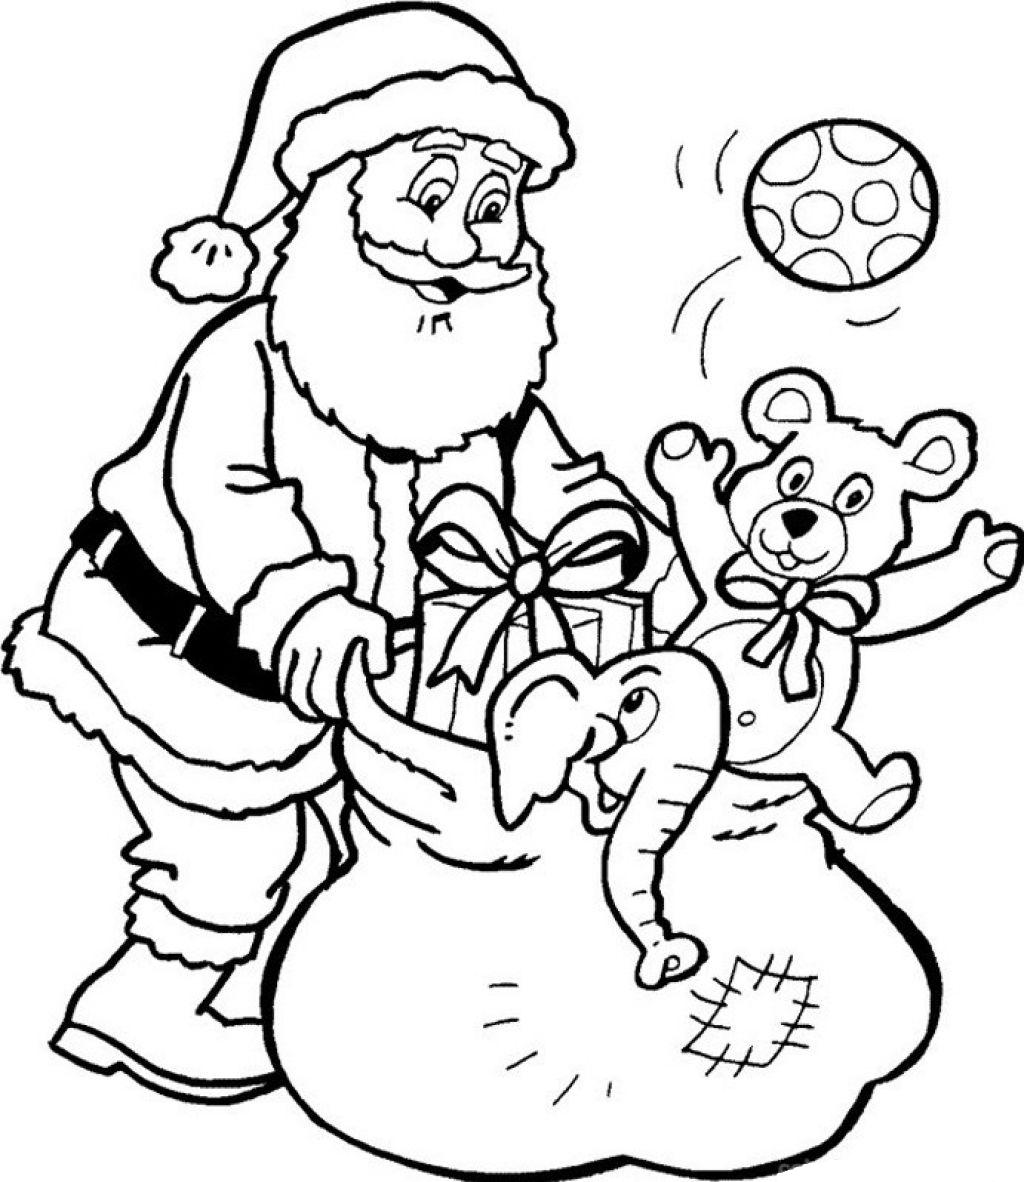 1024x1182 Santa Claus Coloring Pages For Kids Preschool Snazzy Draw Paint